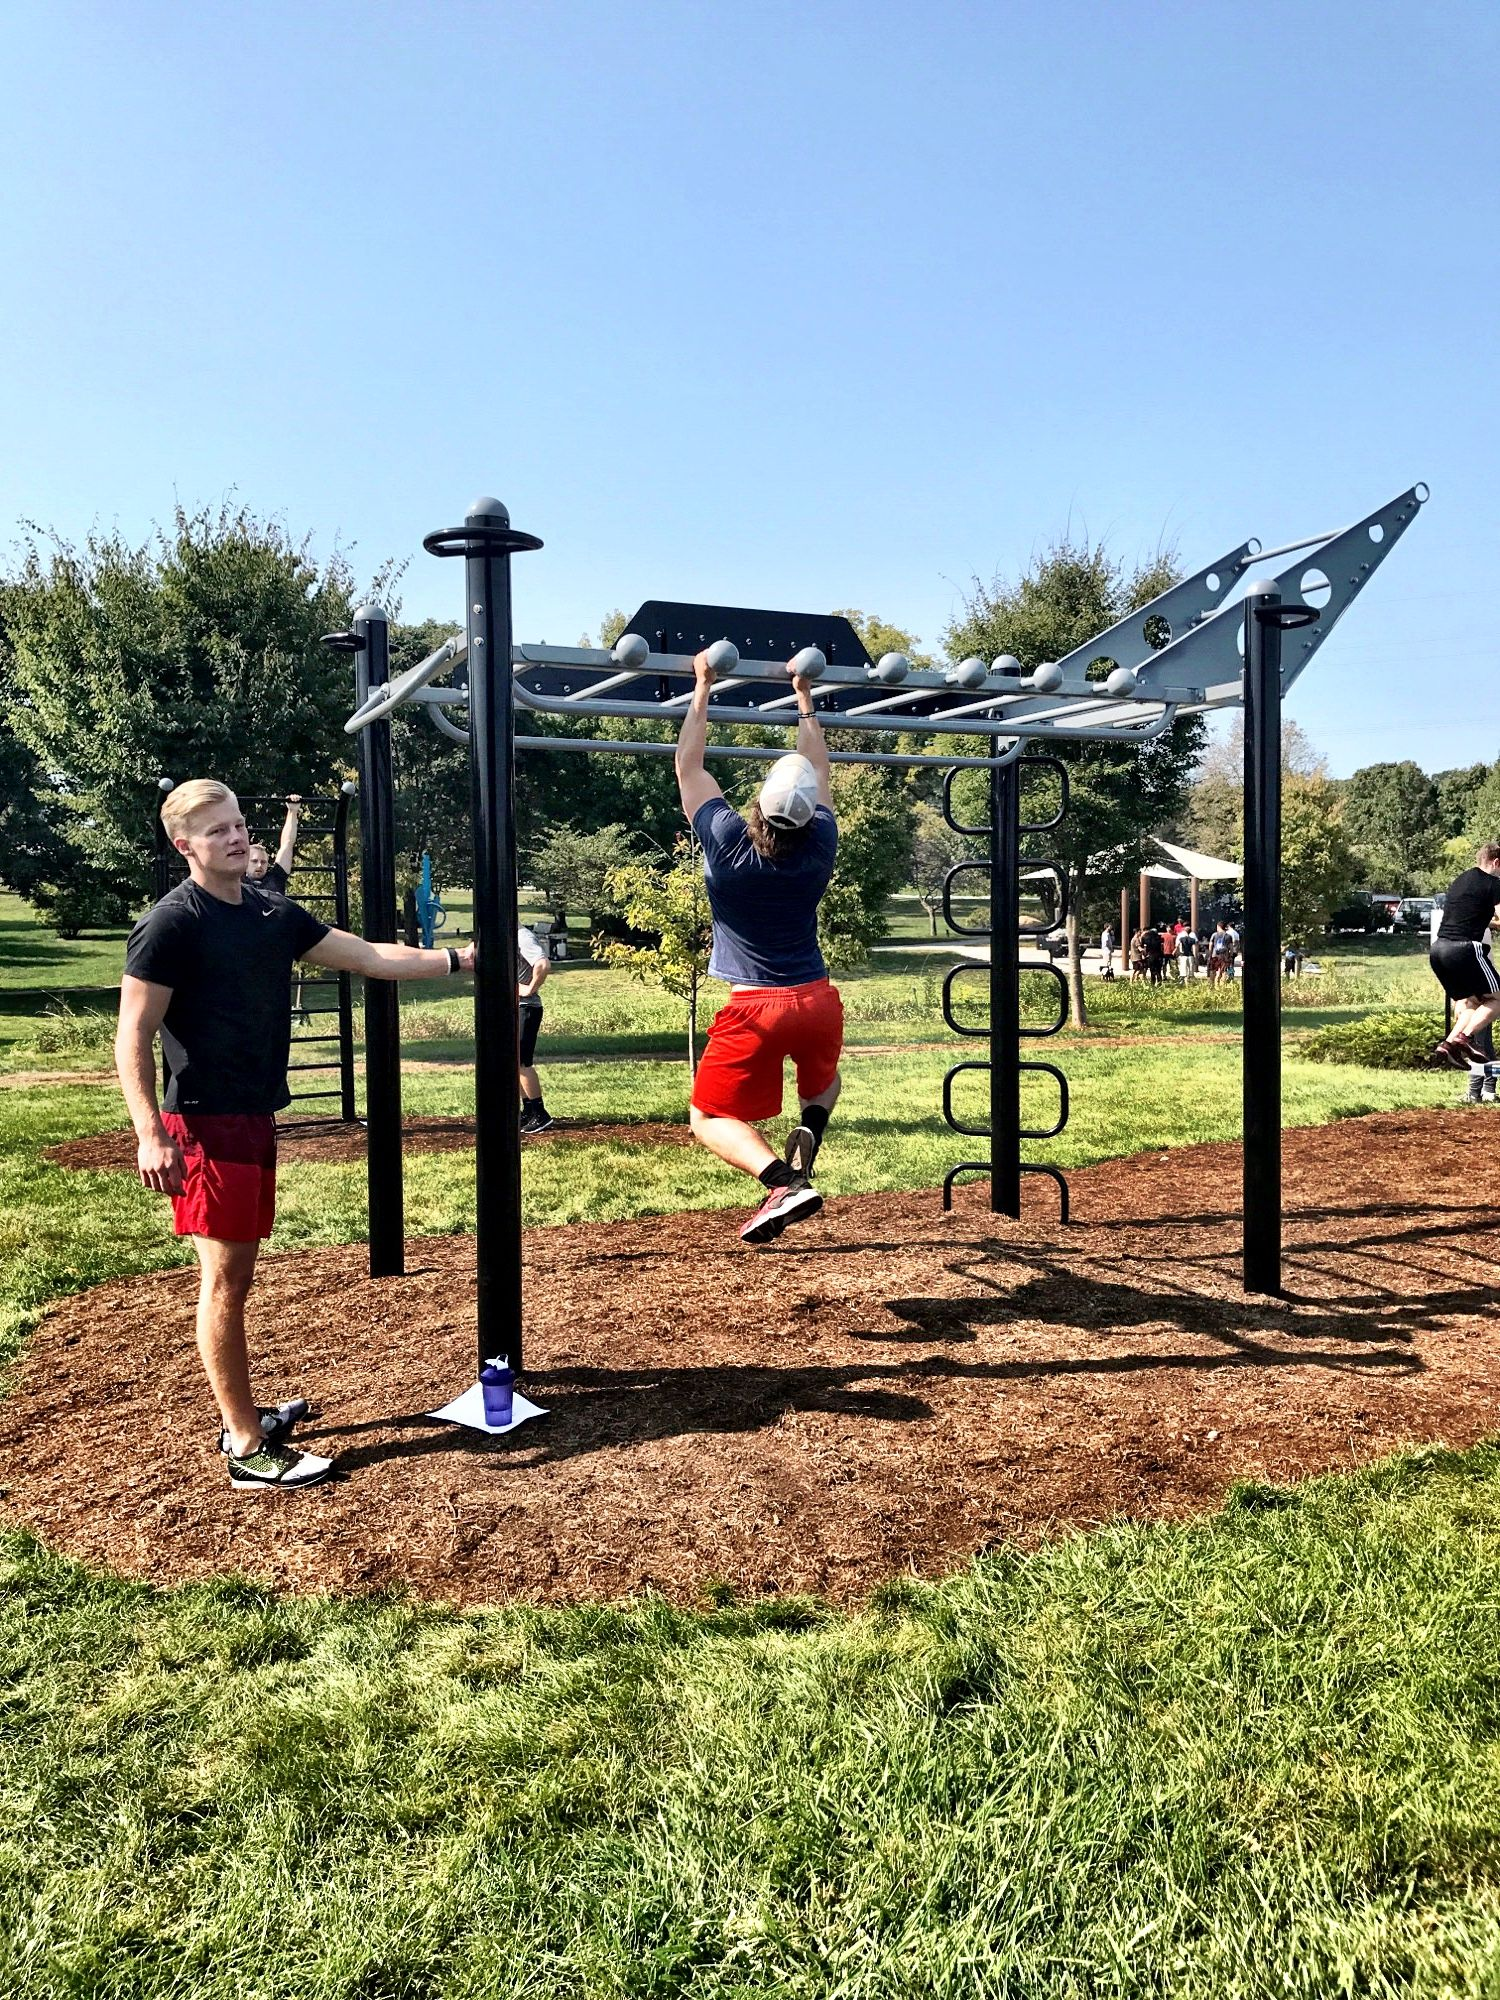 Purdue University Recreation Adds Dedicated Outdoor Functional Fitness And Calisthenics Training Area With Calisthenics Training Calisthenics Calisthenics Diet